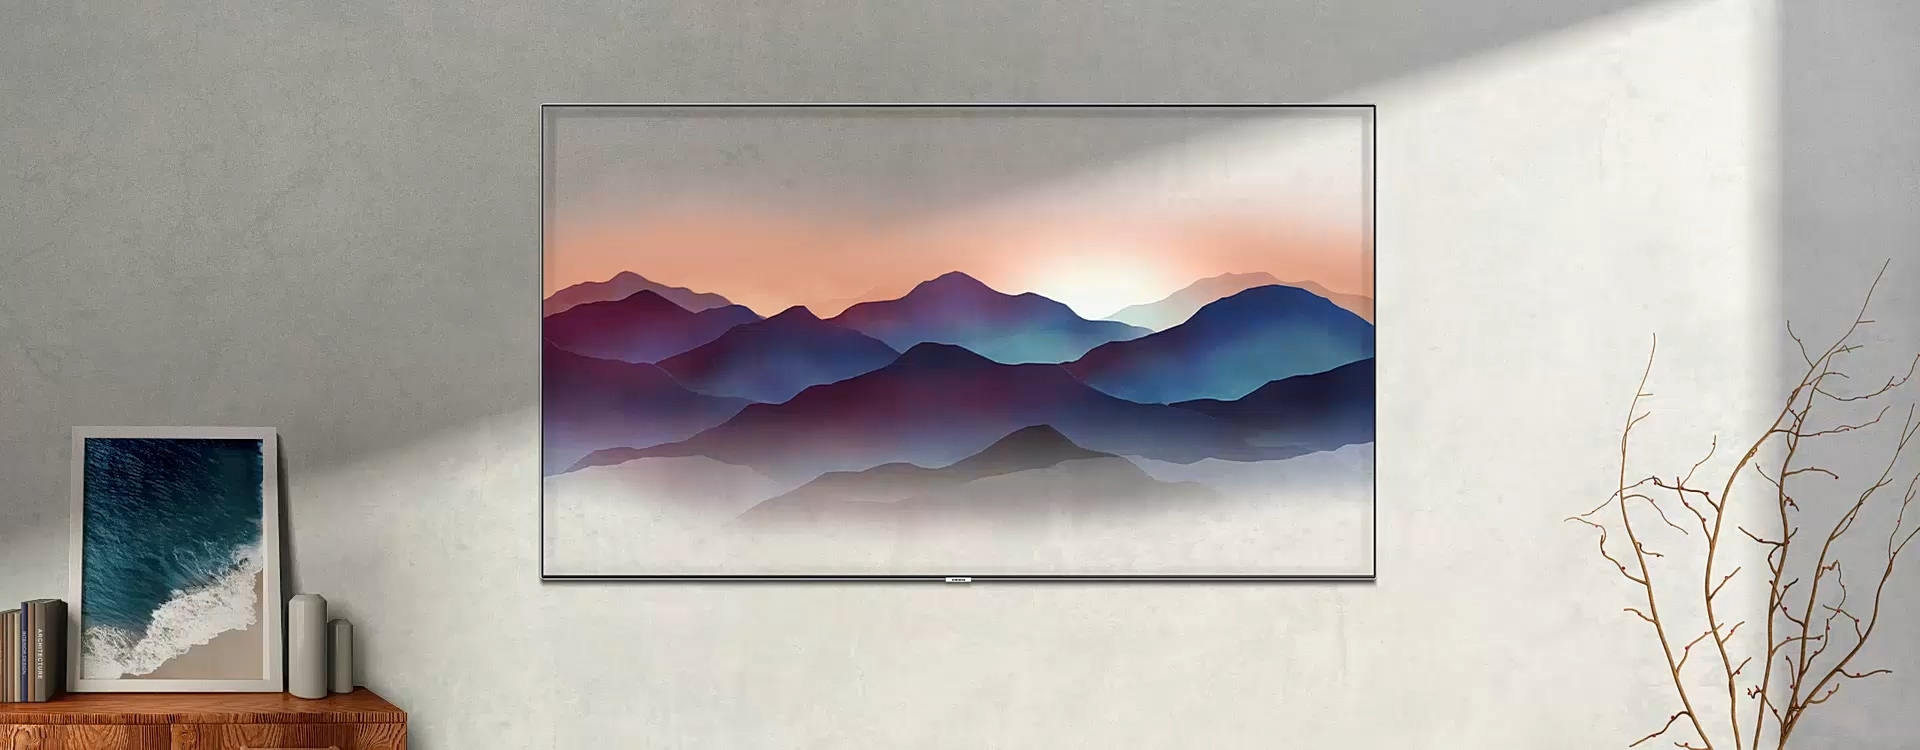 A video shows the various options for Ambient Mode. In Deco Mode, an image of mountains in the QLED TV on the wall is moving naturally. The room goes dark as the time changes from day to night. In Info Mode, the QLED TV shows the current location and temperature. The screen goes dark as the time changes from day to night. In Photo Mode, photo list appears on the Samsung QLED TV. The screen focuses in on the selected picture. In Music Mode, A notification for playing music appears on the QLED TV on the wall